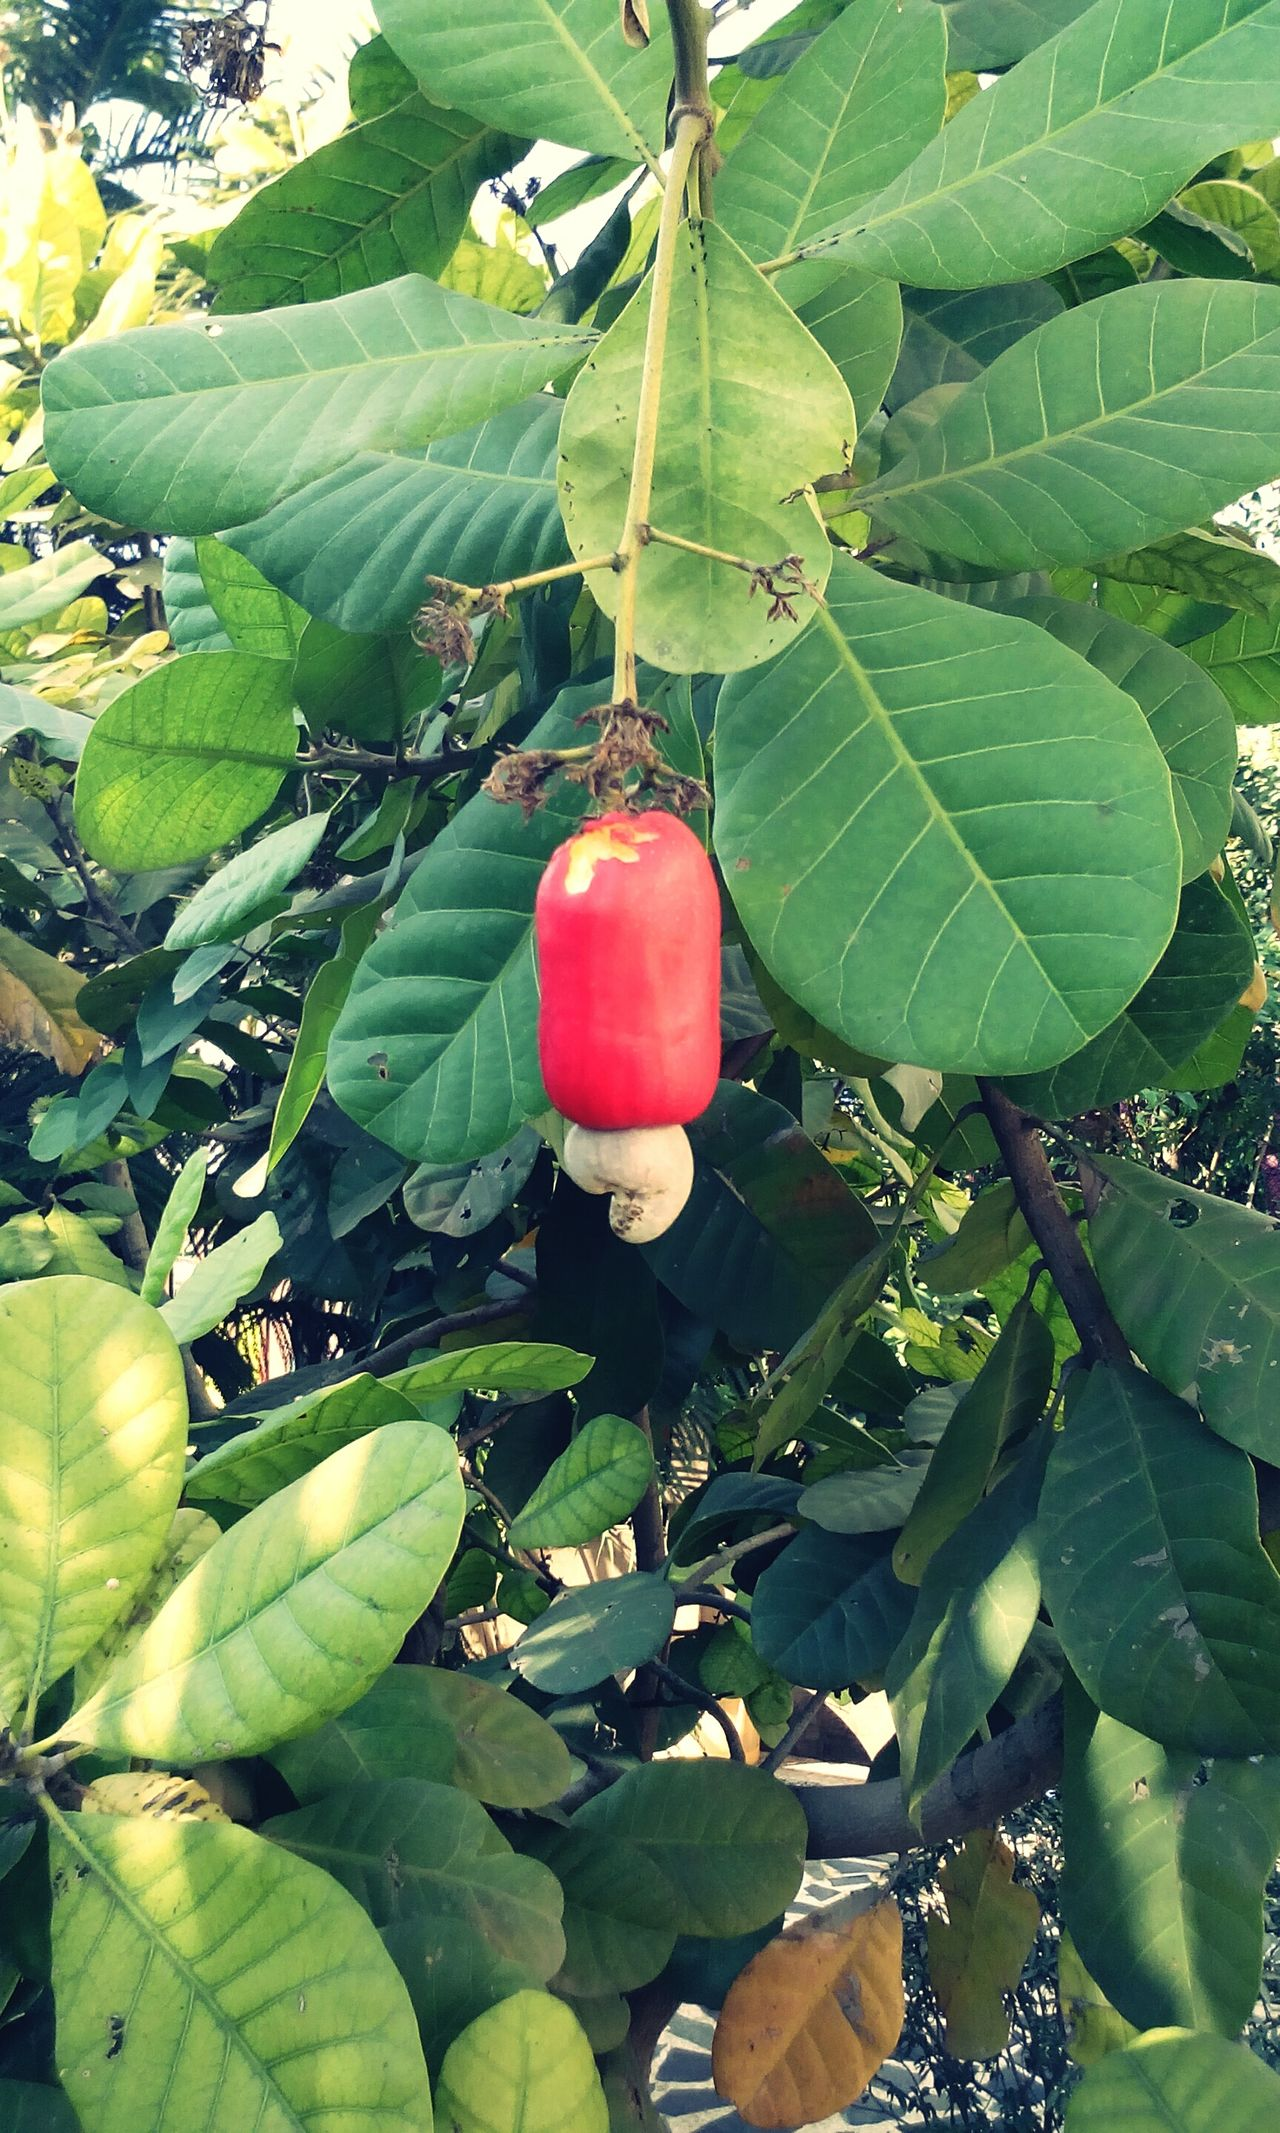 Cashew Cashewnut Cashew Tree Cashewnuts Cashew Fruit Summertime Birds Tree Fruit Redfruits Garden Photography Garden Fruits